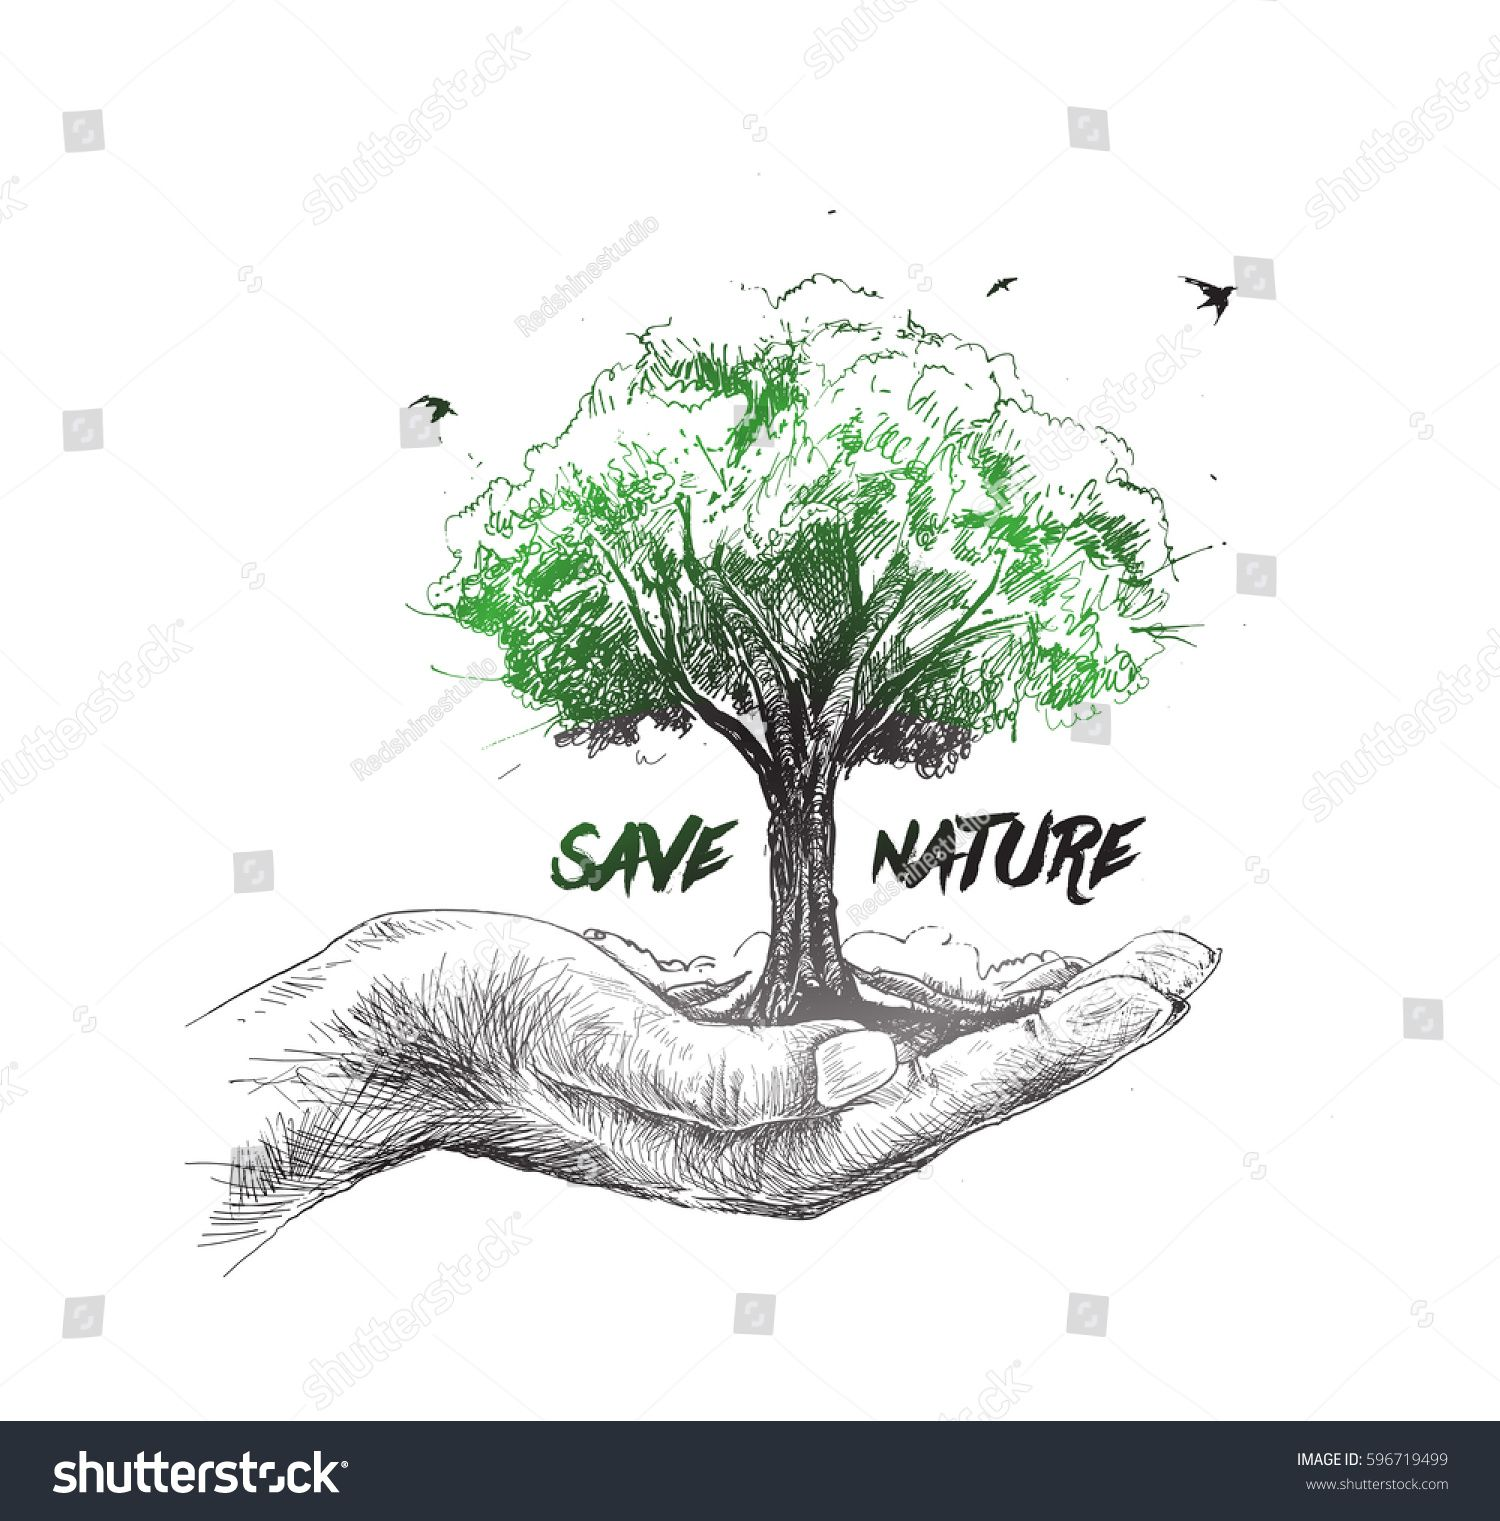 Save Nature Human Hand Holding Tree Against White Background Ecology And Earth Day Concept Save Nature Earth Drawings Save Earth Drawing